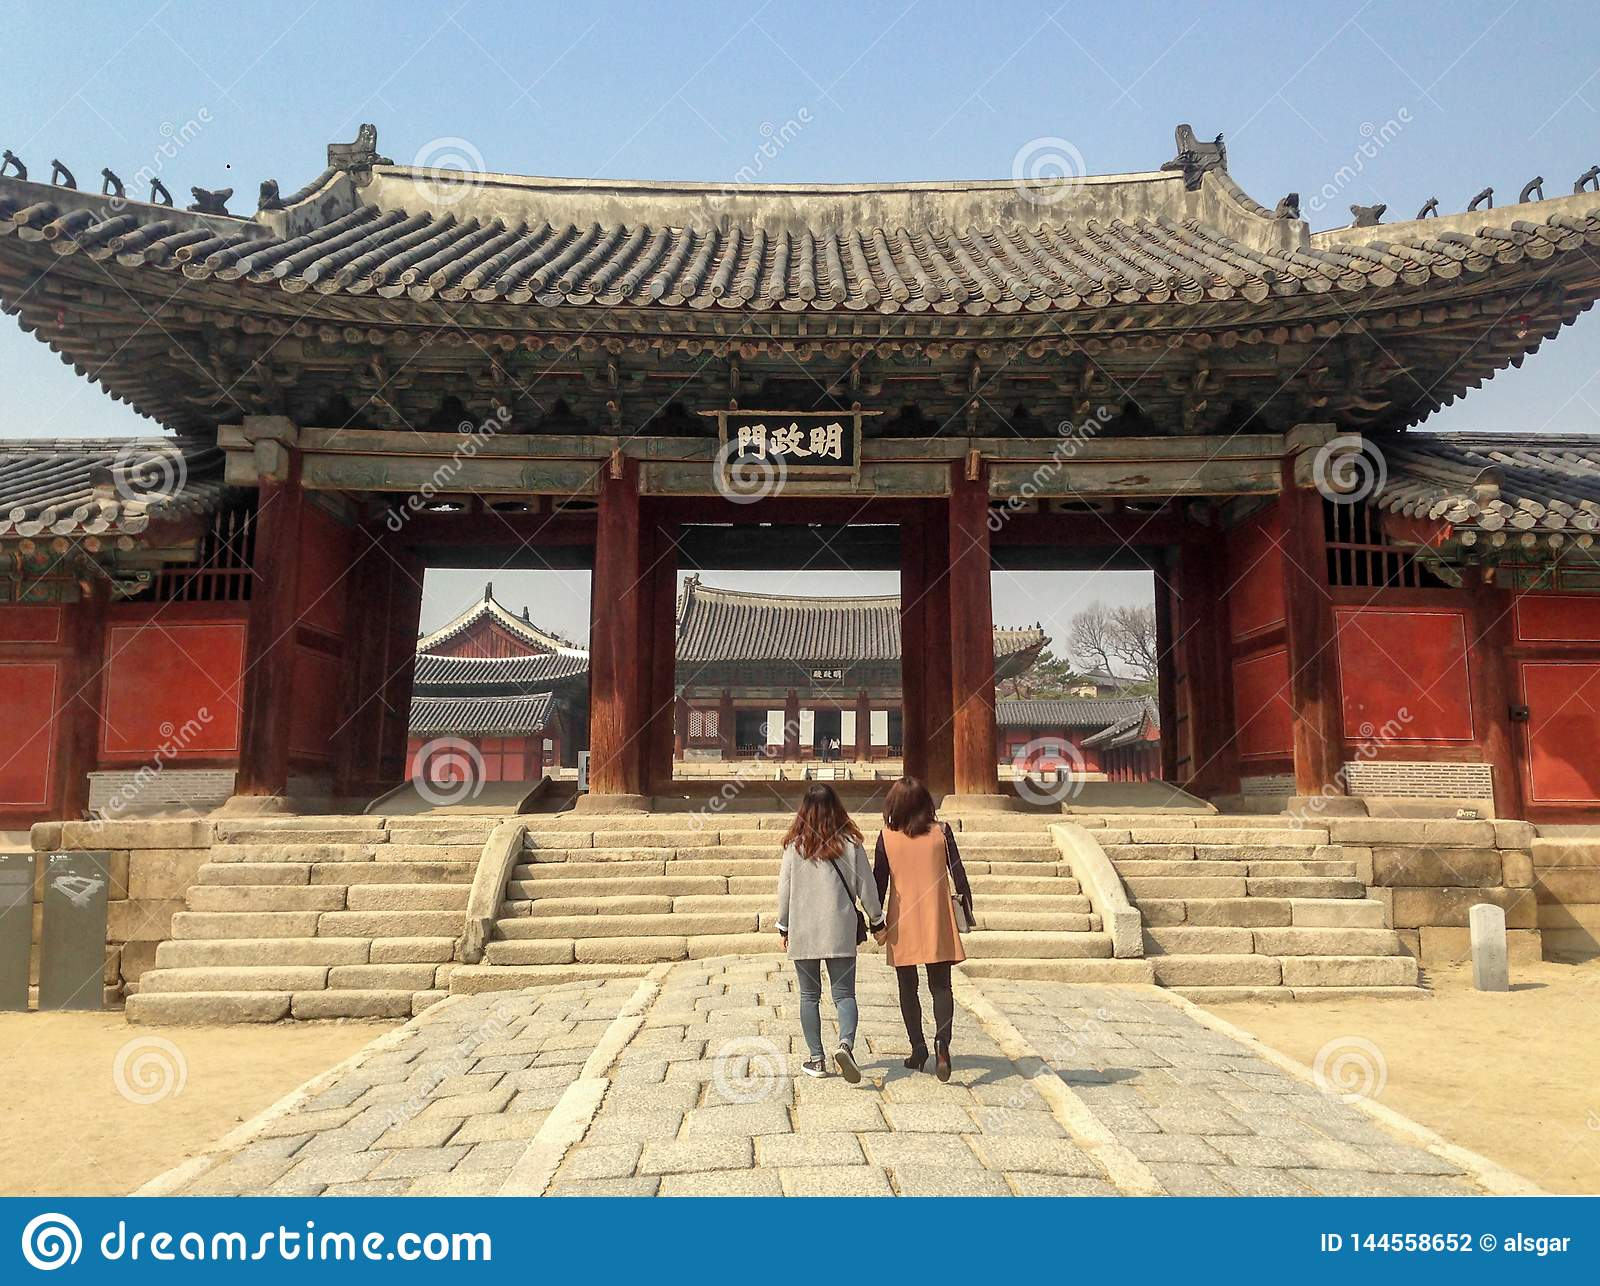 Before entering the central area of Changgyeonggung Palace